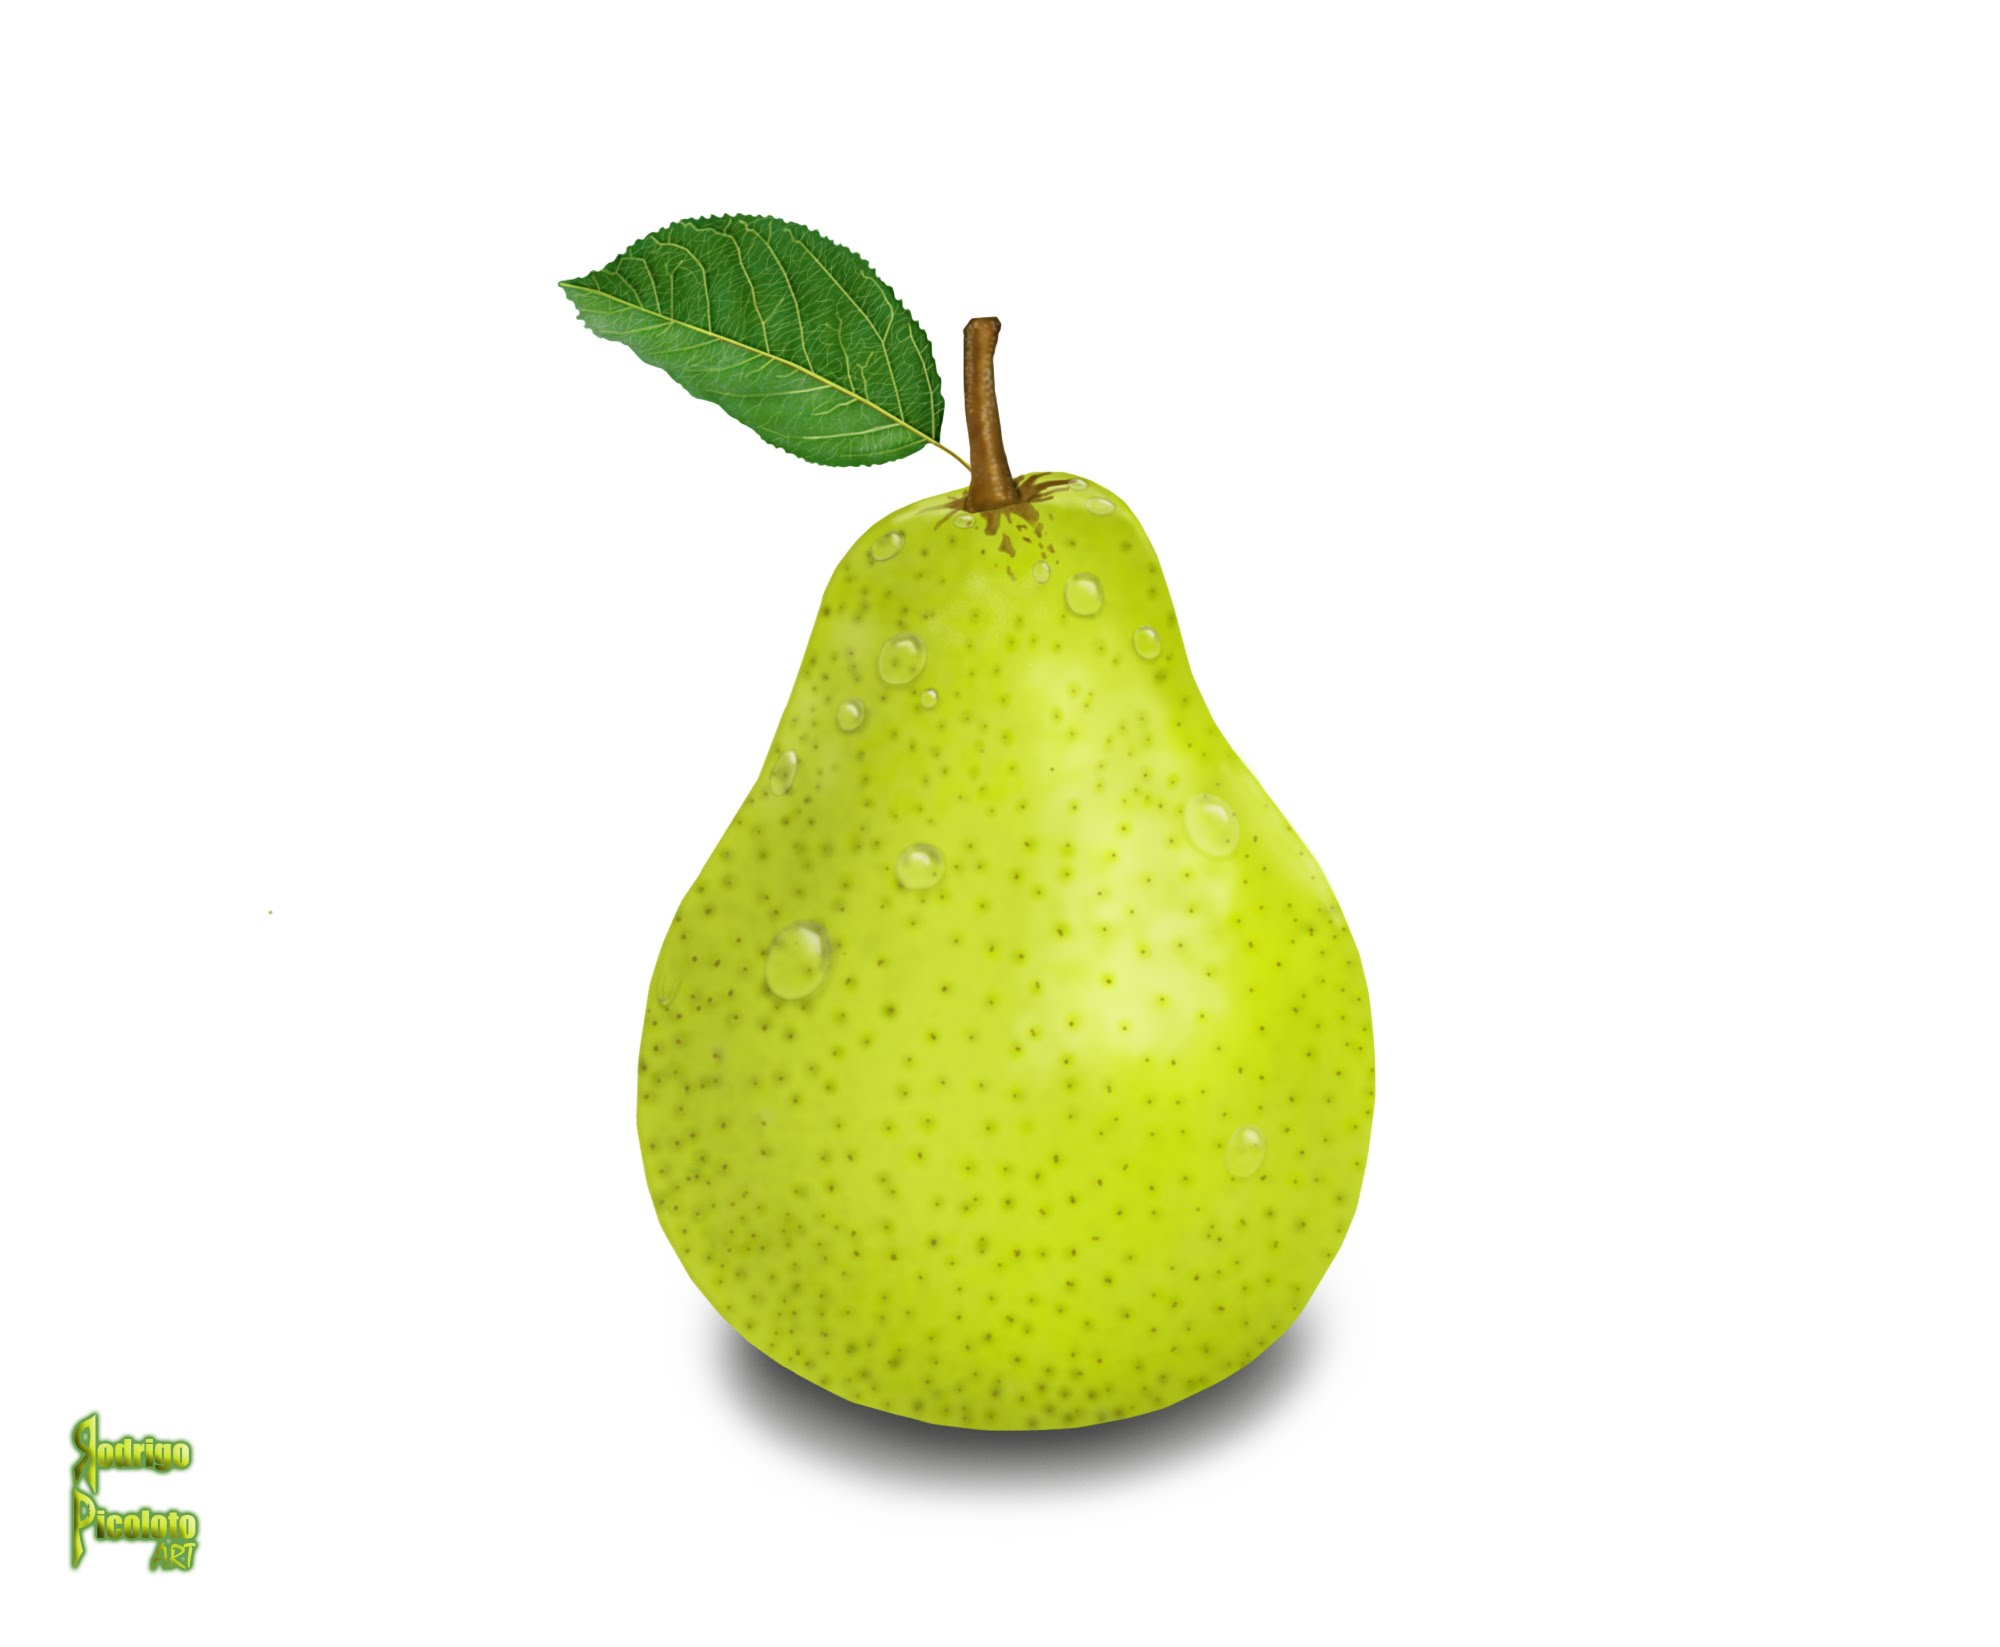 2000x1647 Drawing A Pear In Photoshop